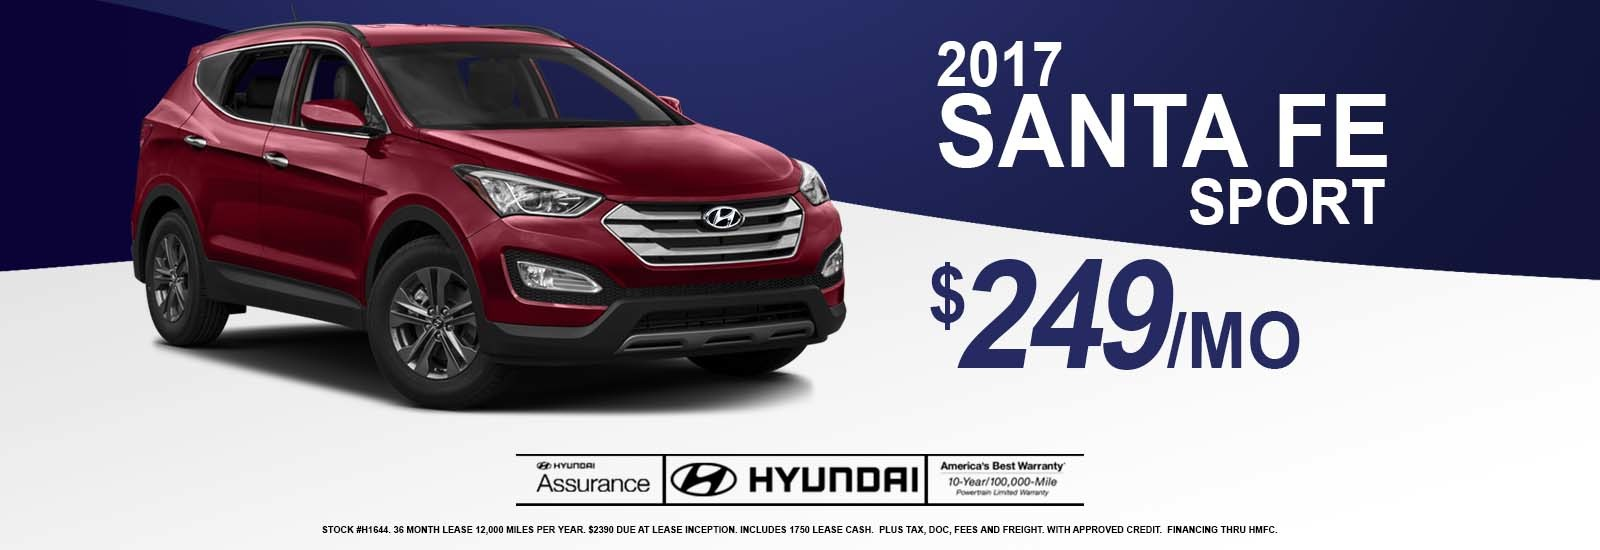 Ray Skillman Hyundai >> Hyundai Dealer in Greenwood, IN | Ray Skillman Southside Hyundai